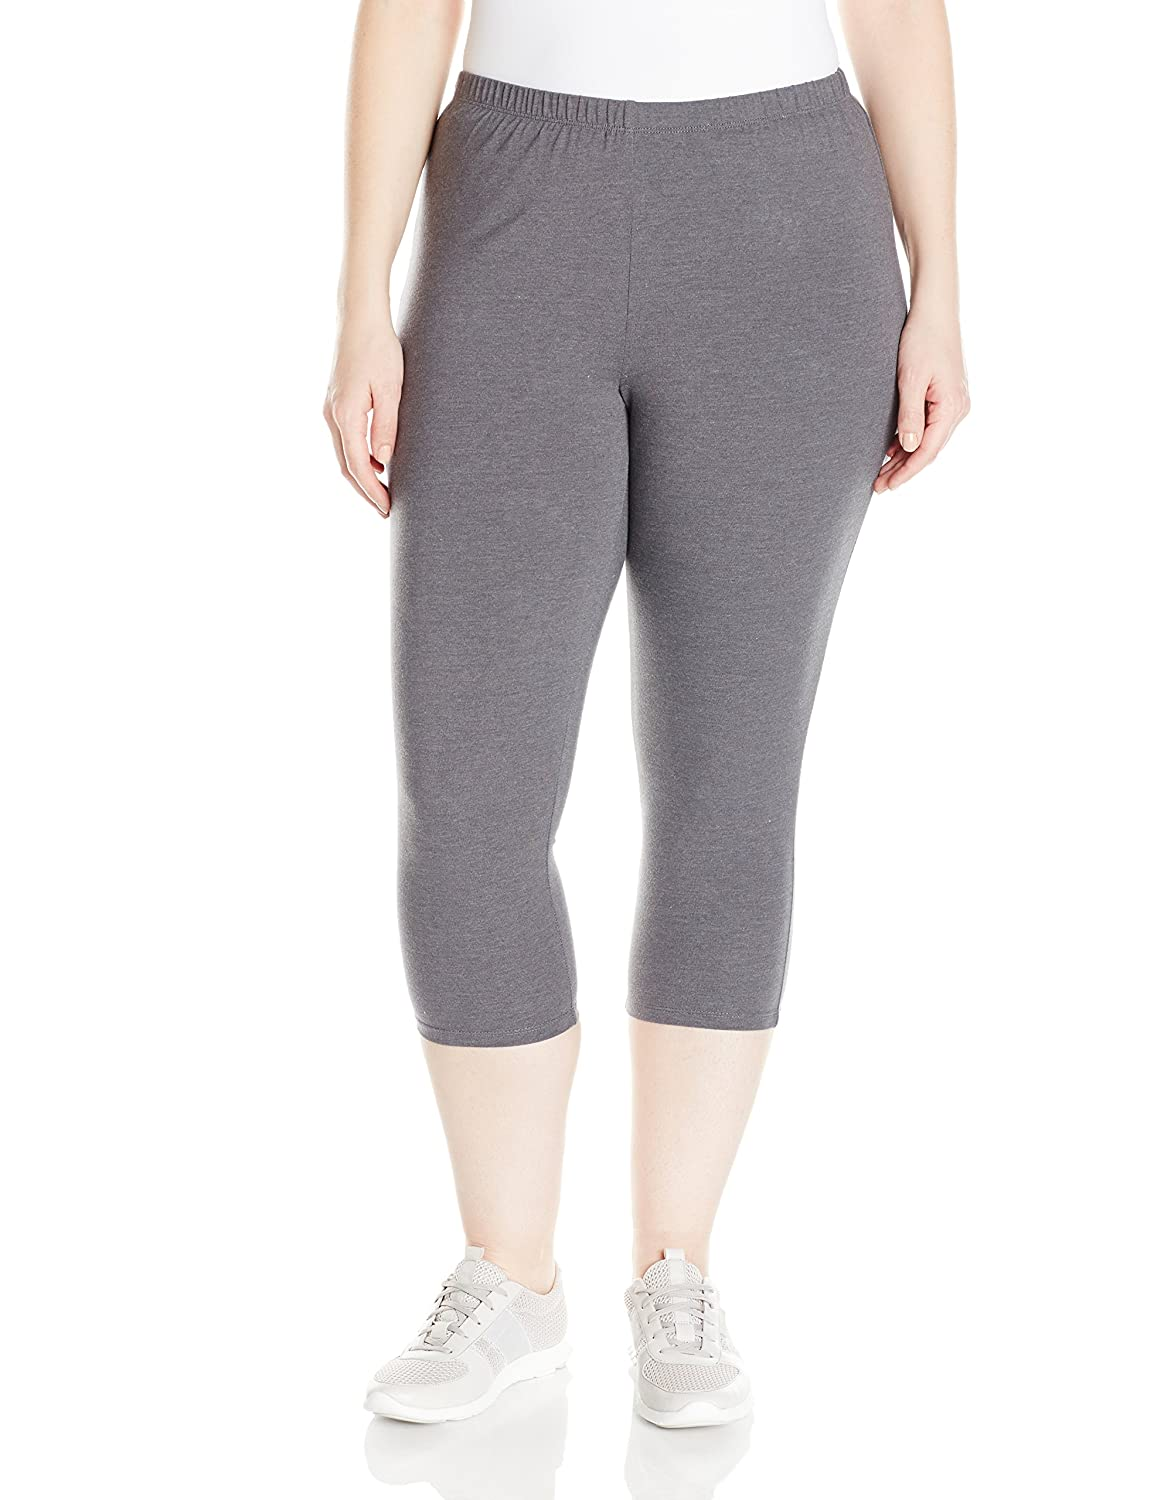 Plus Size Capri Leggings Photo Album - Reikian